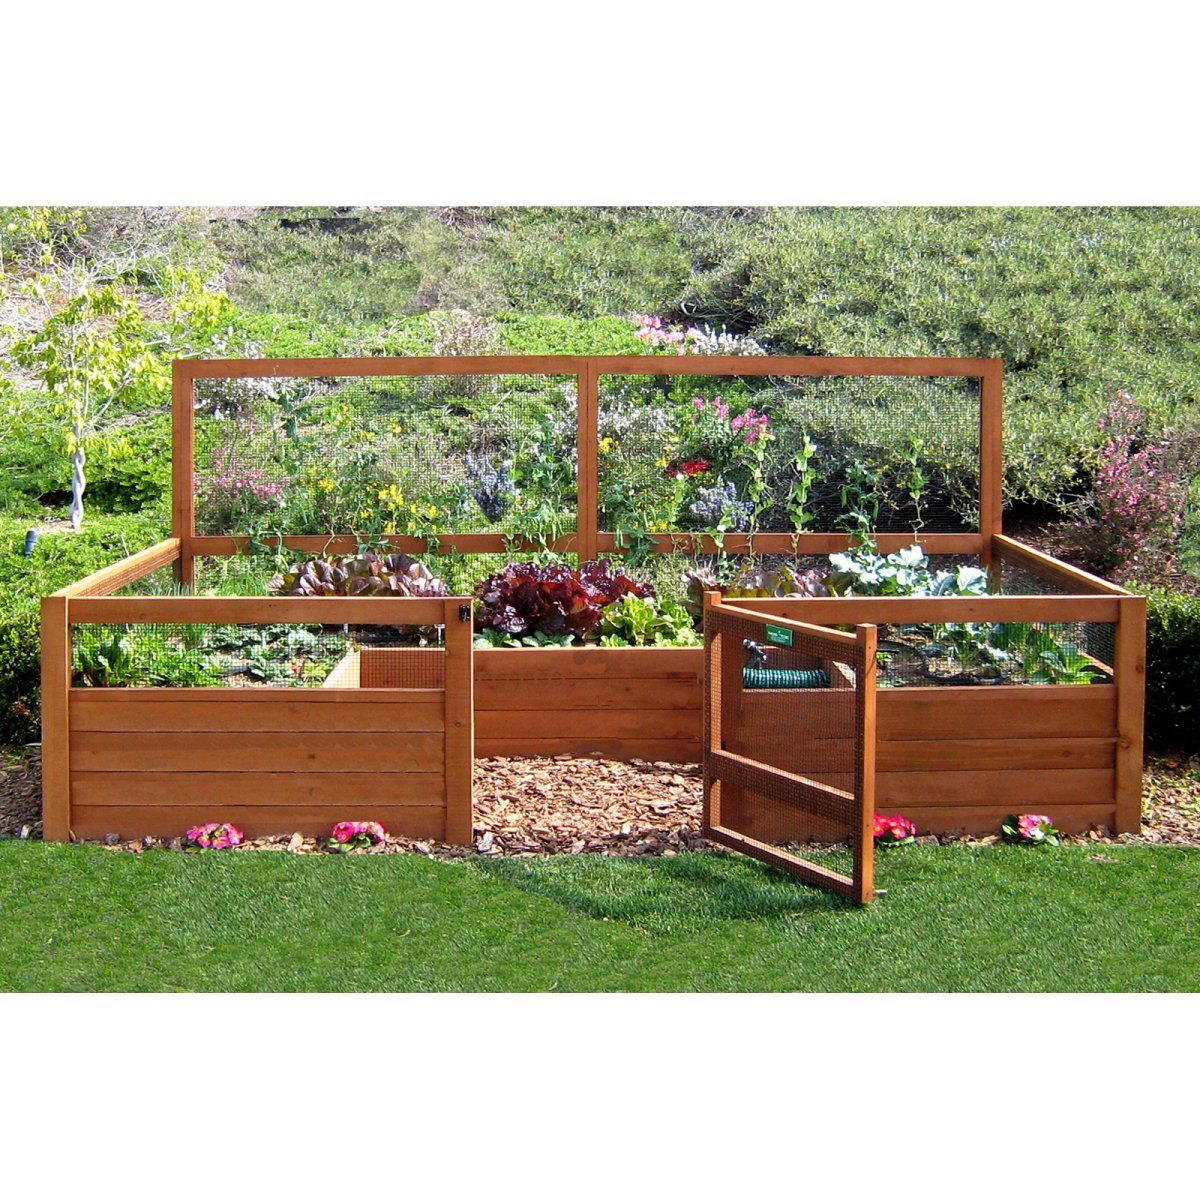 Hey Liz Check This Out Enclosed Contained 6 X 12 Ft Vegetable Garden Fenced Vegetable Garden Small Vegetable Gardens Vegetable Garden Design